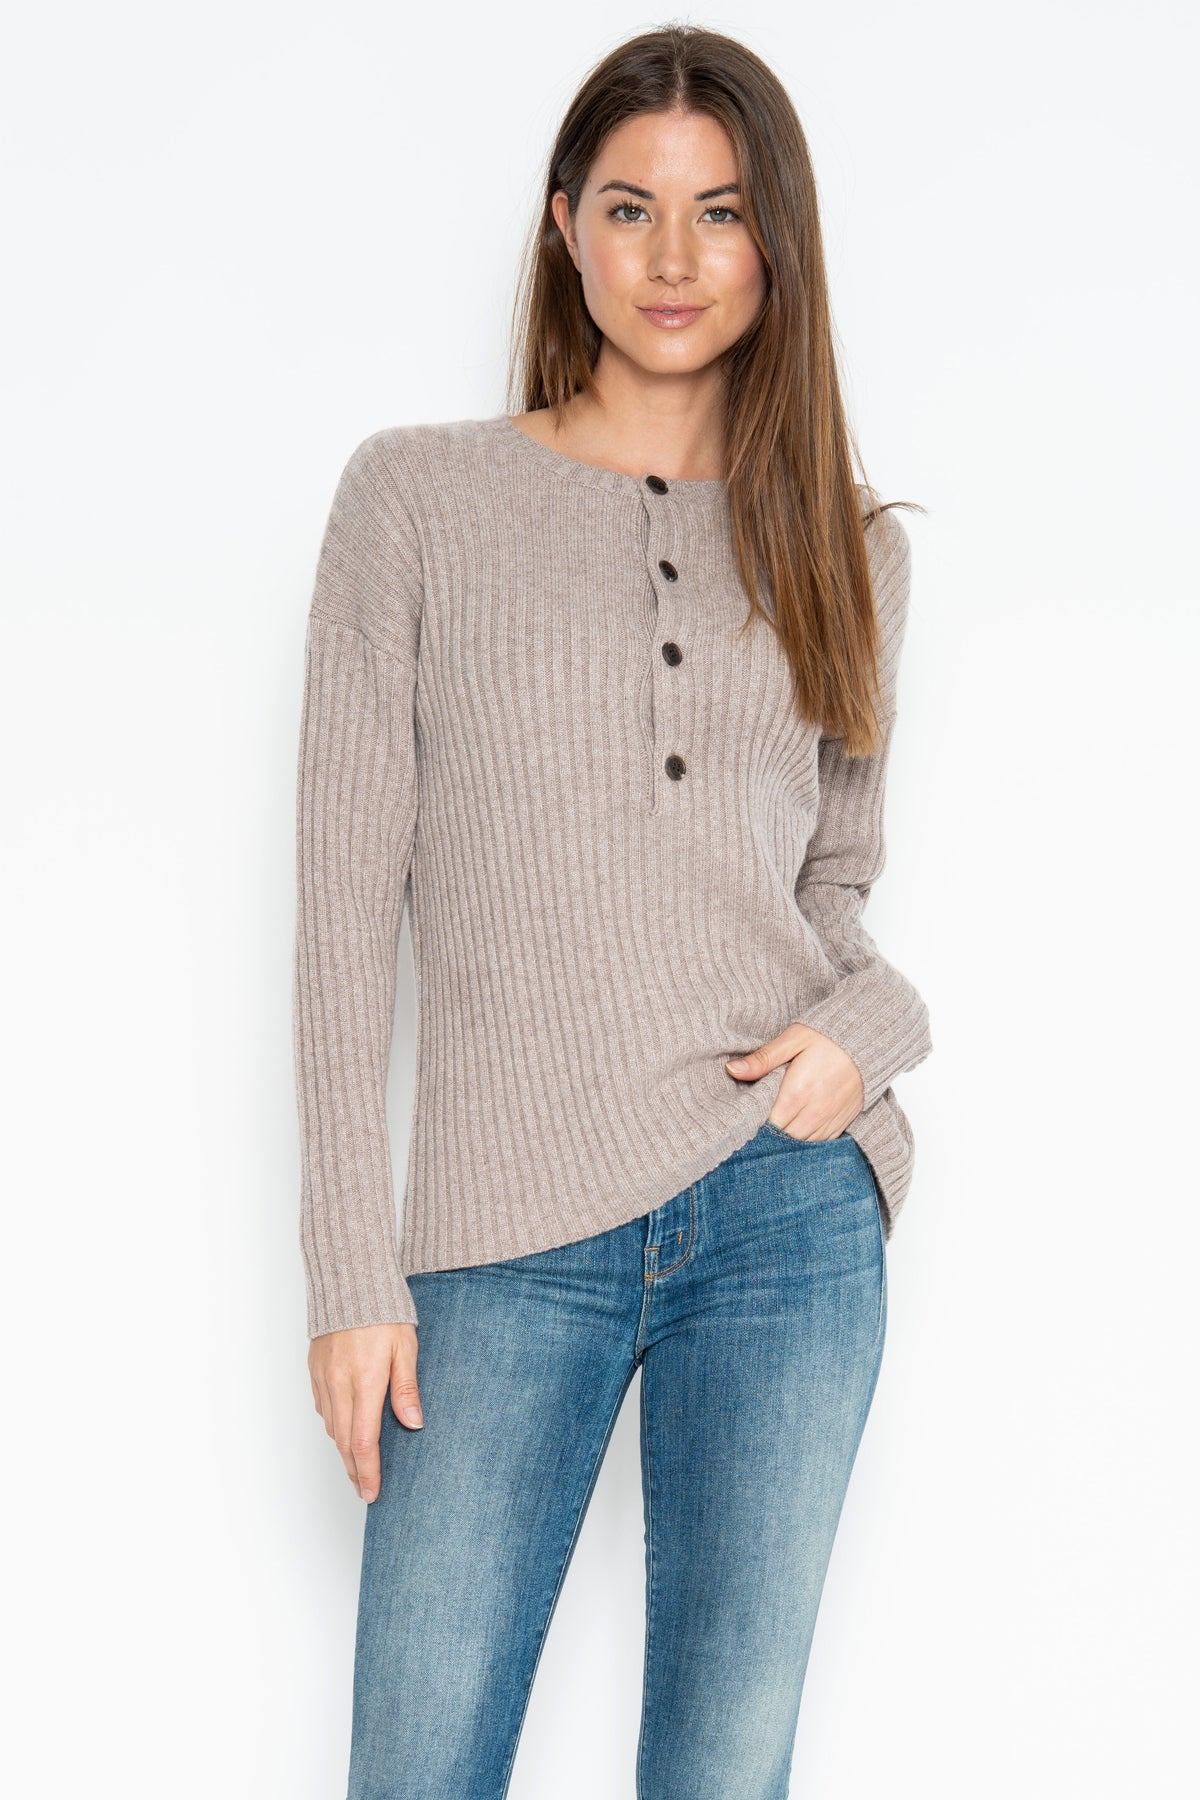 Colette Cashmere Henley - Toast